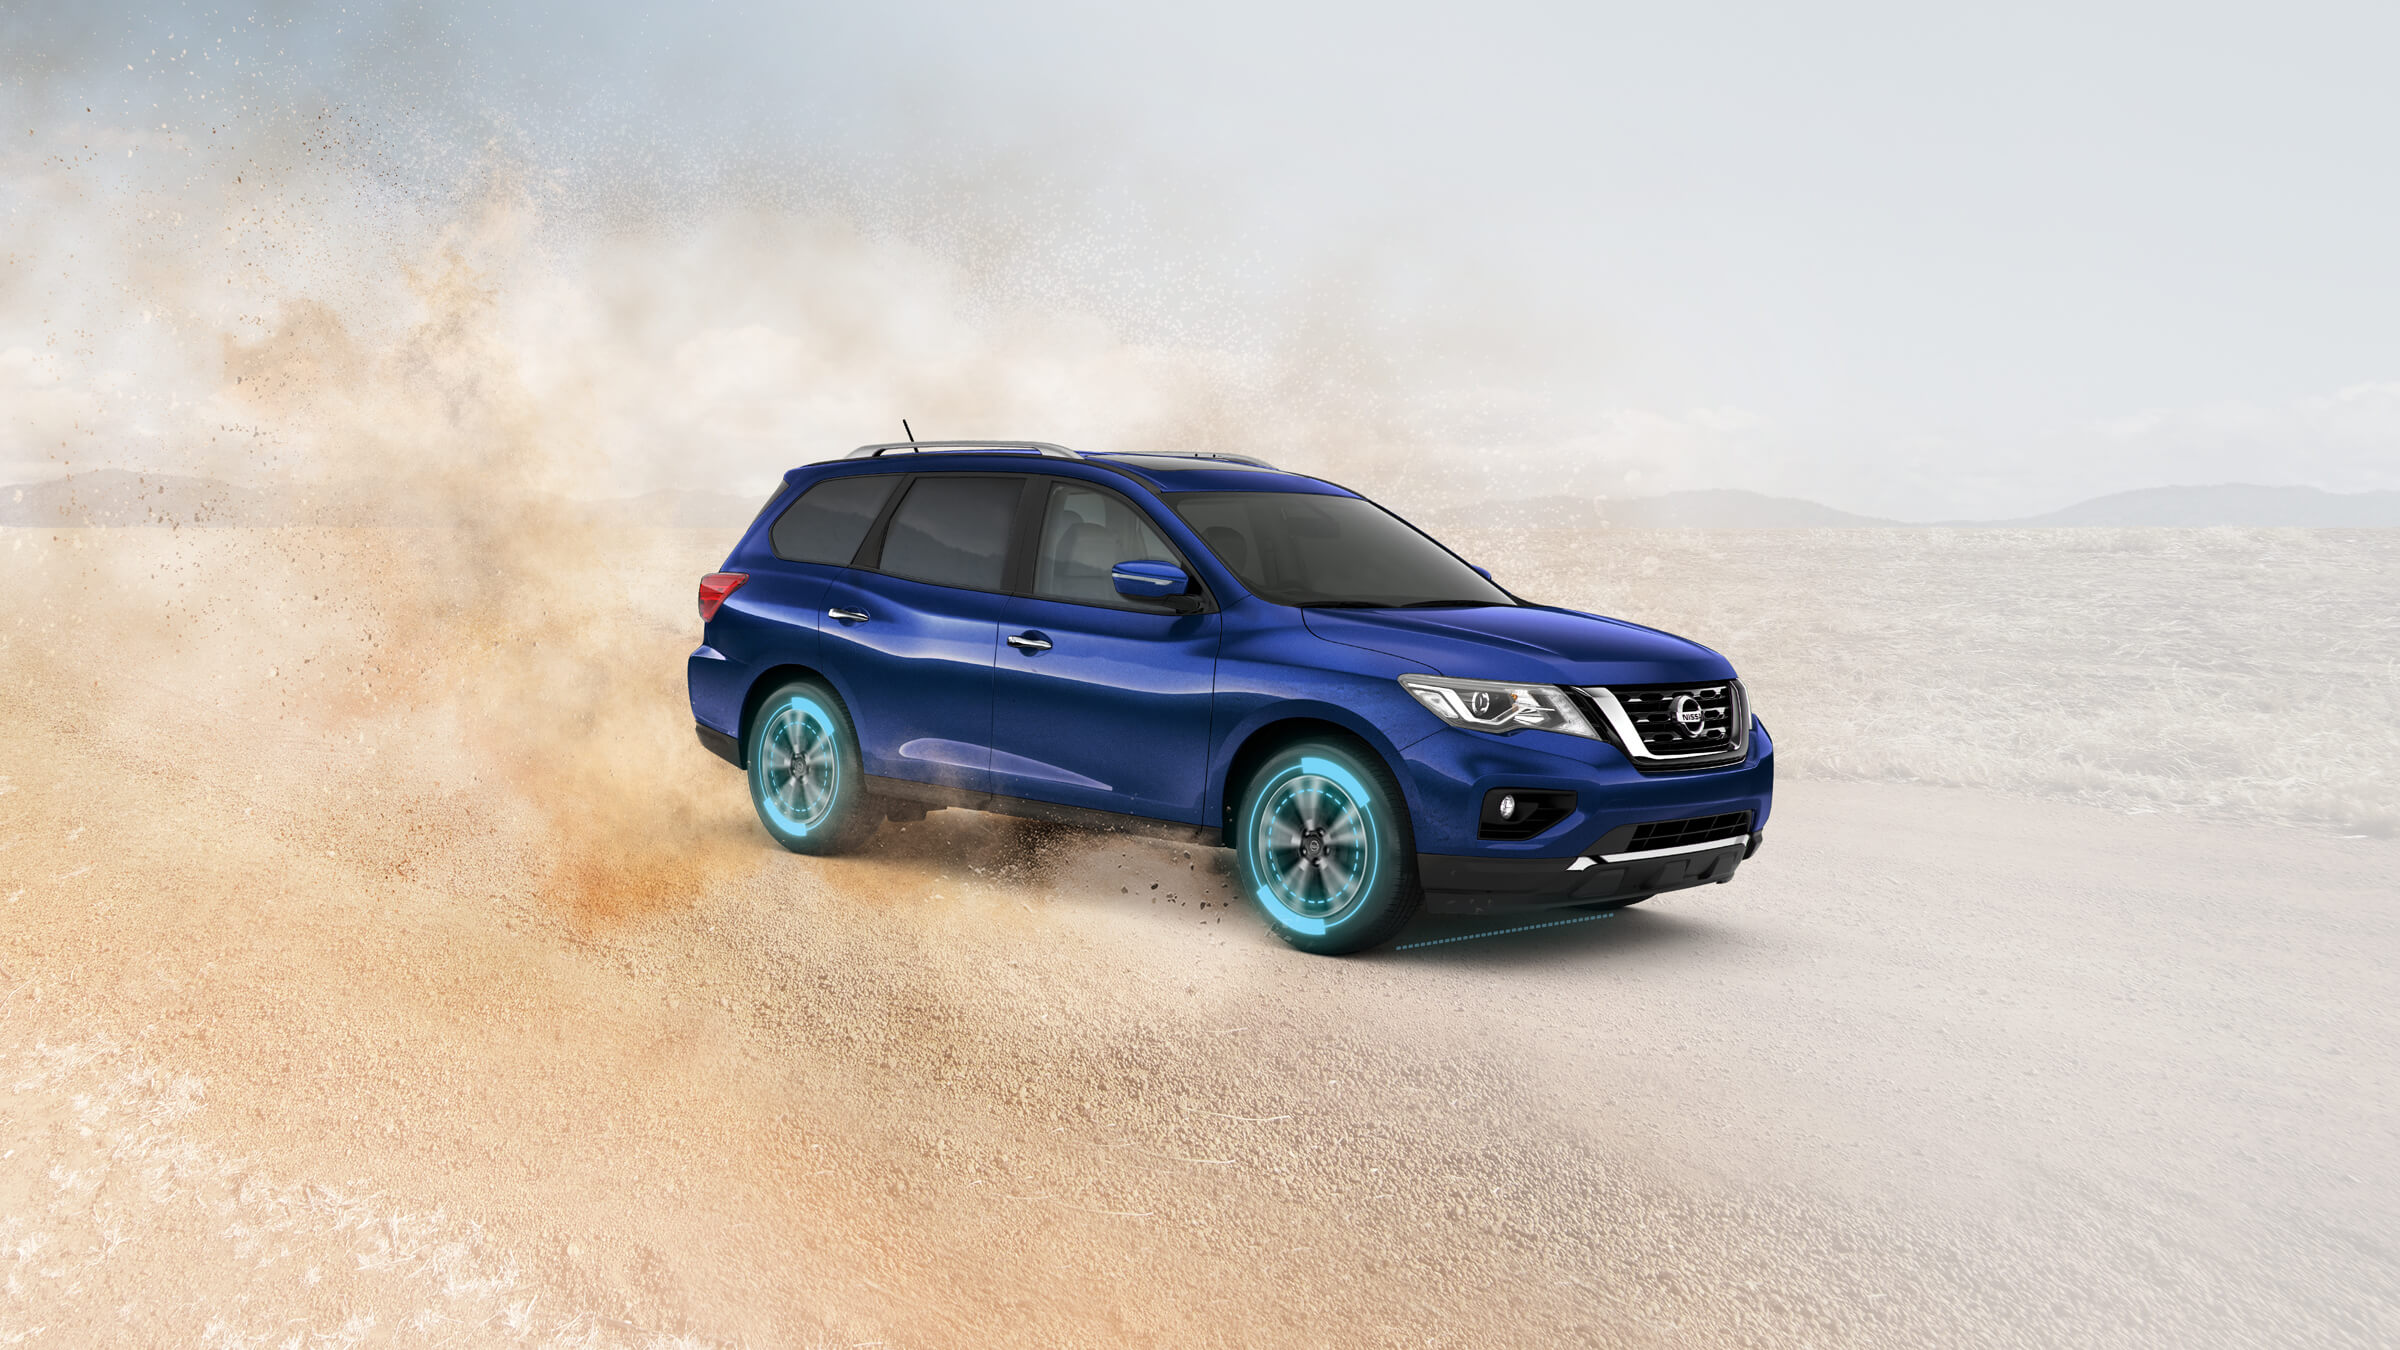 Nissan Pathfinder driving across remote off-road terrain